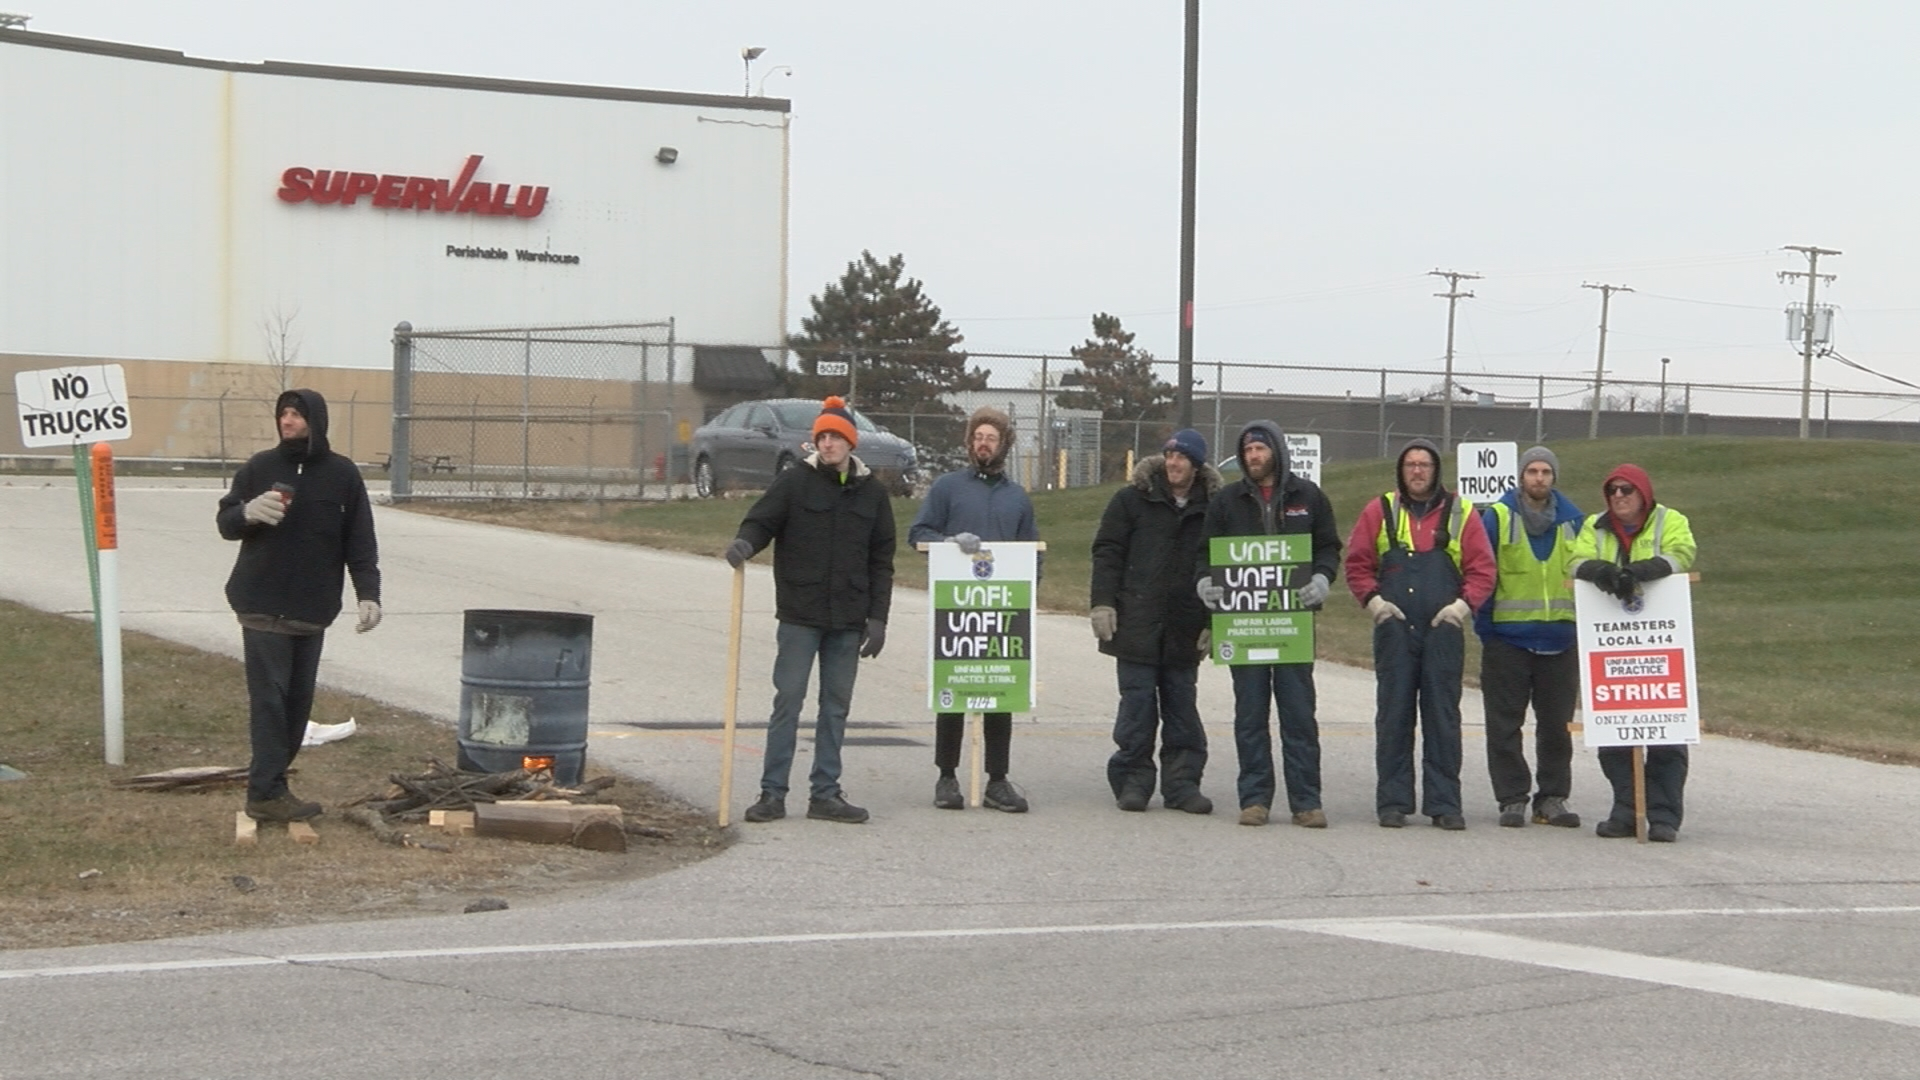 More than 150 Teamster members go on strike outside distribution center